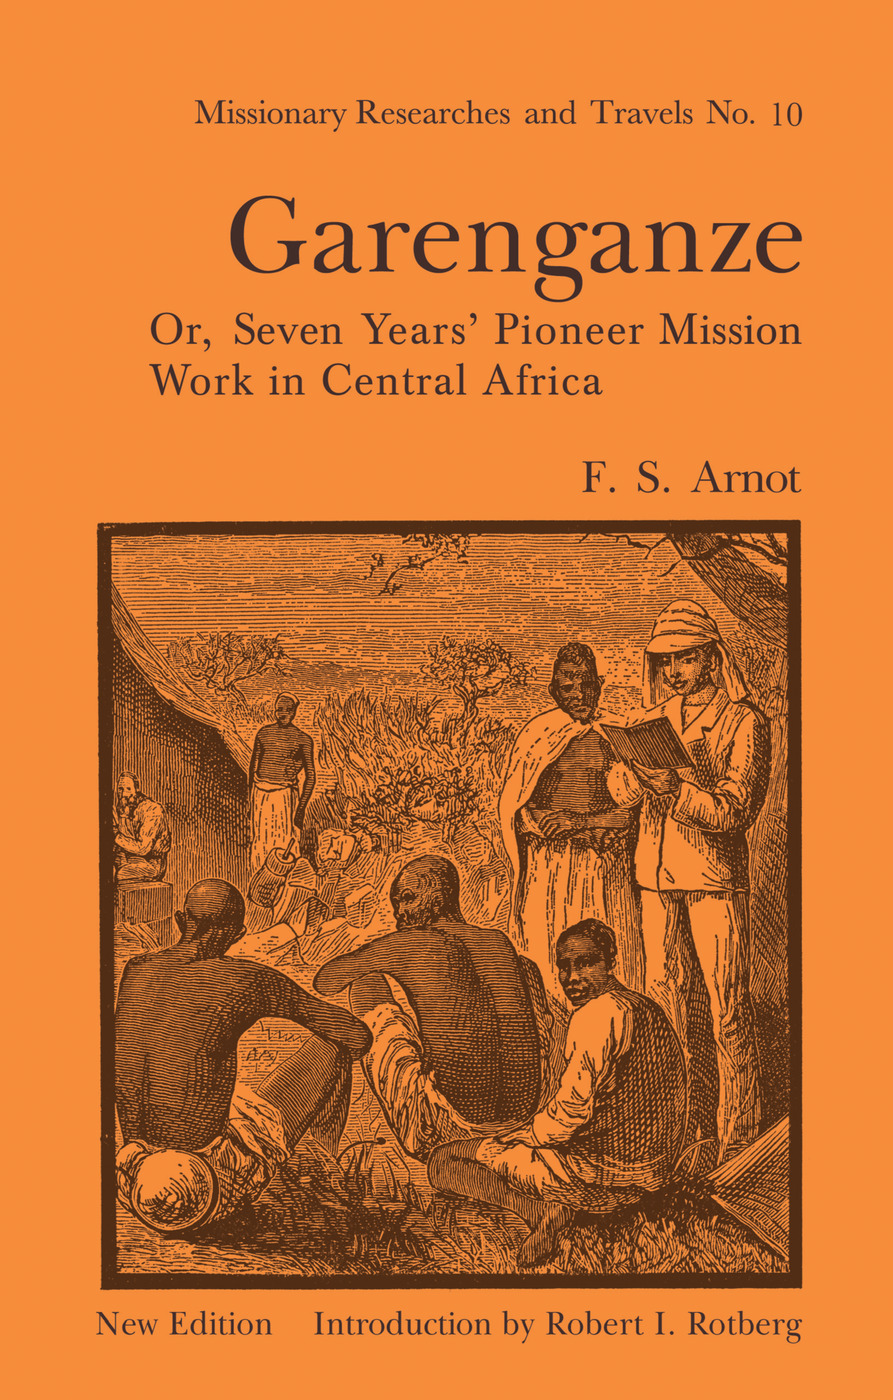 Garenganze or Seven Years Pioneer Mission Work in Central Africa: 1st Edition (Paperback) book cover